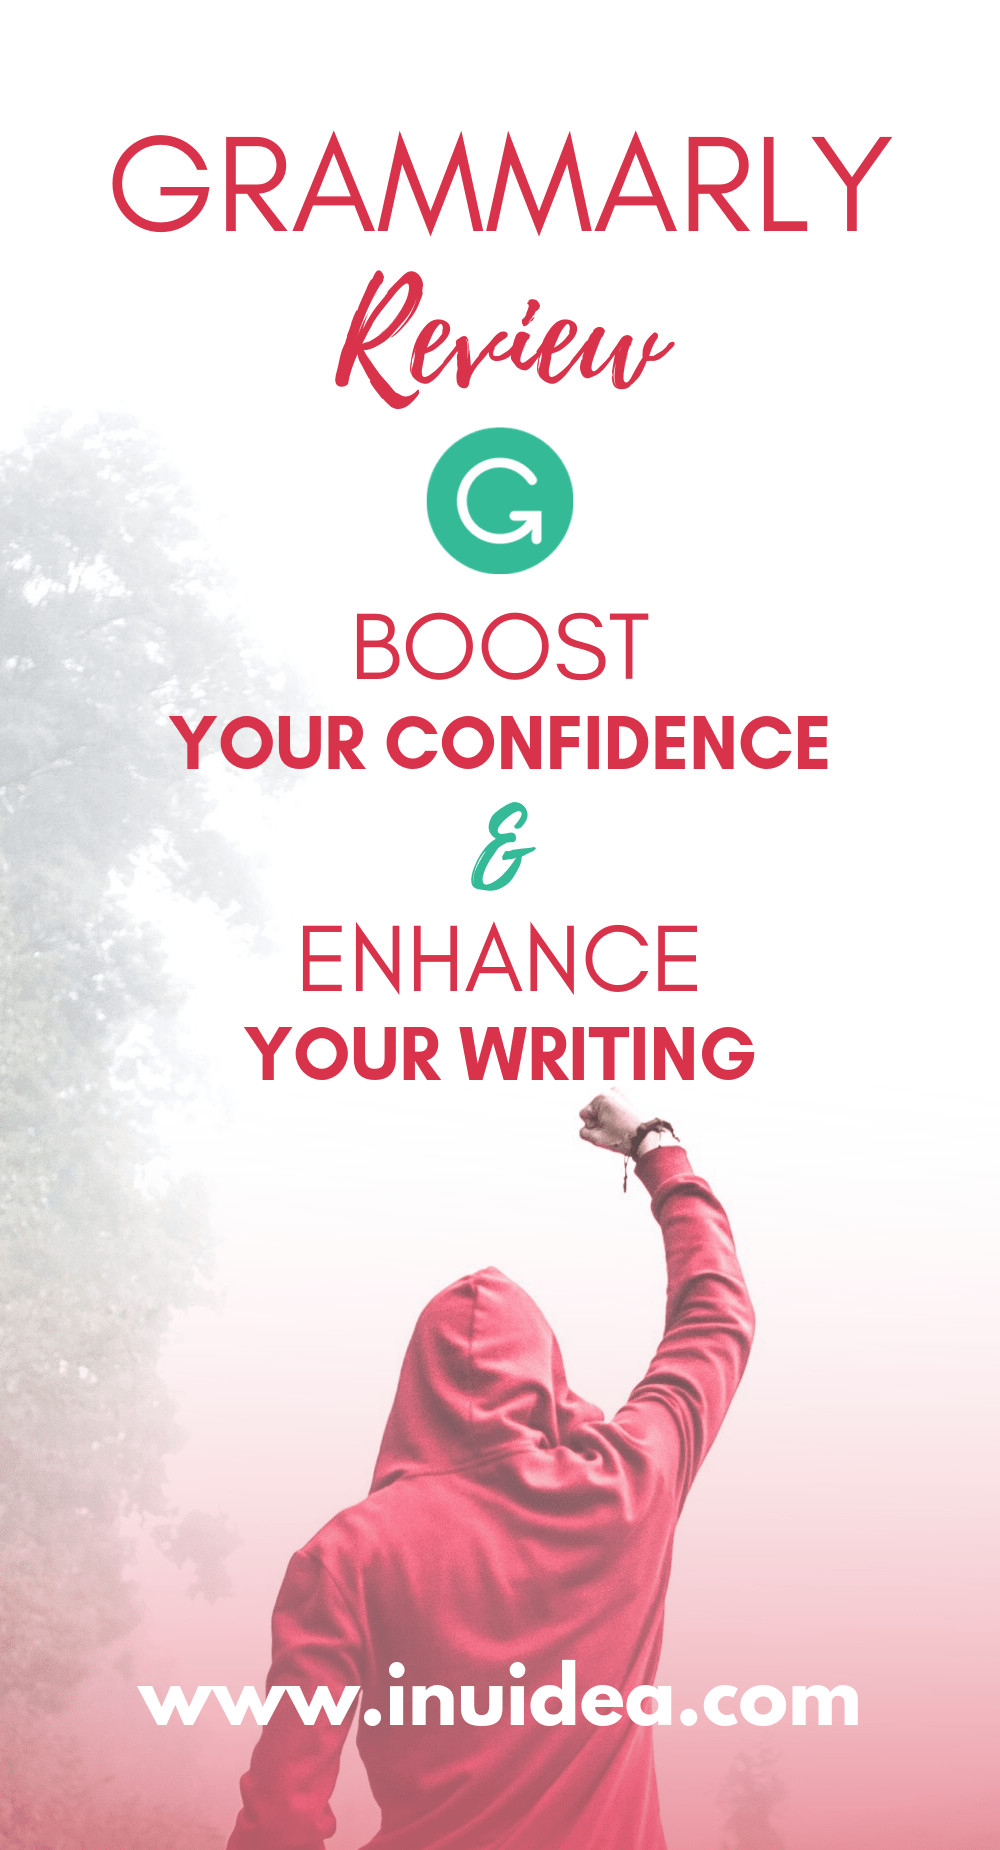 Grammarly Proofreading Software Trade In Price